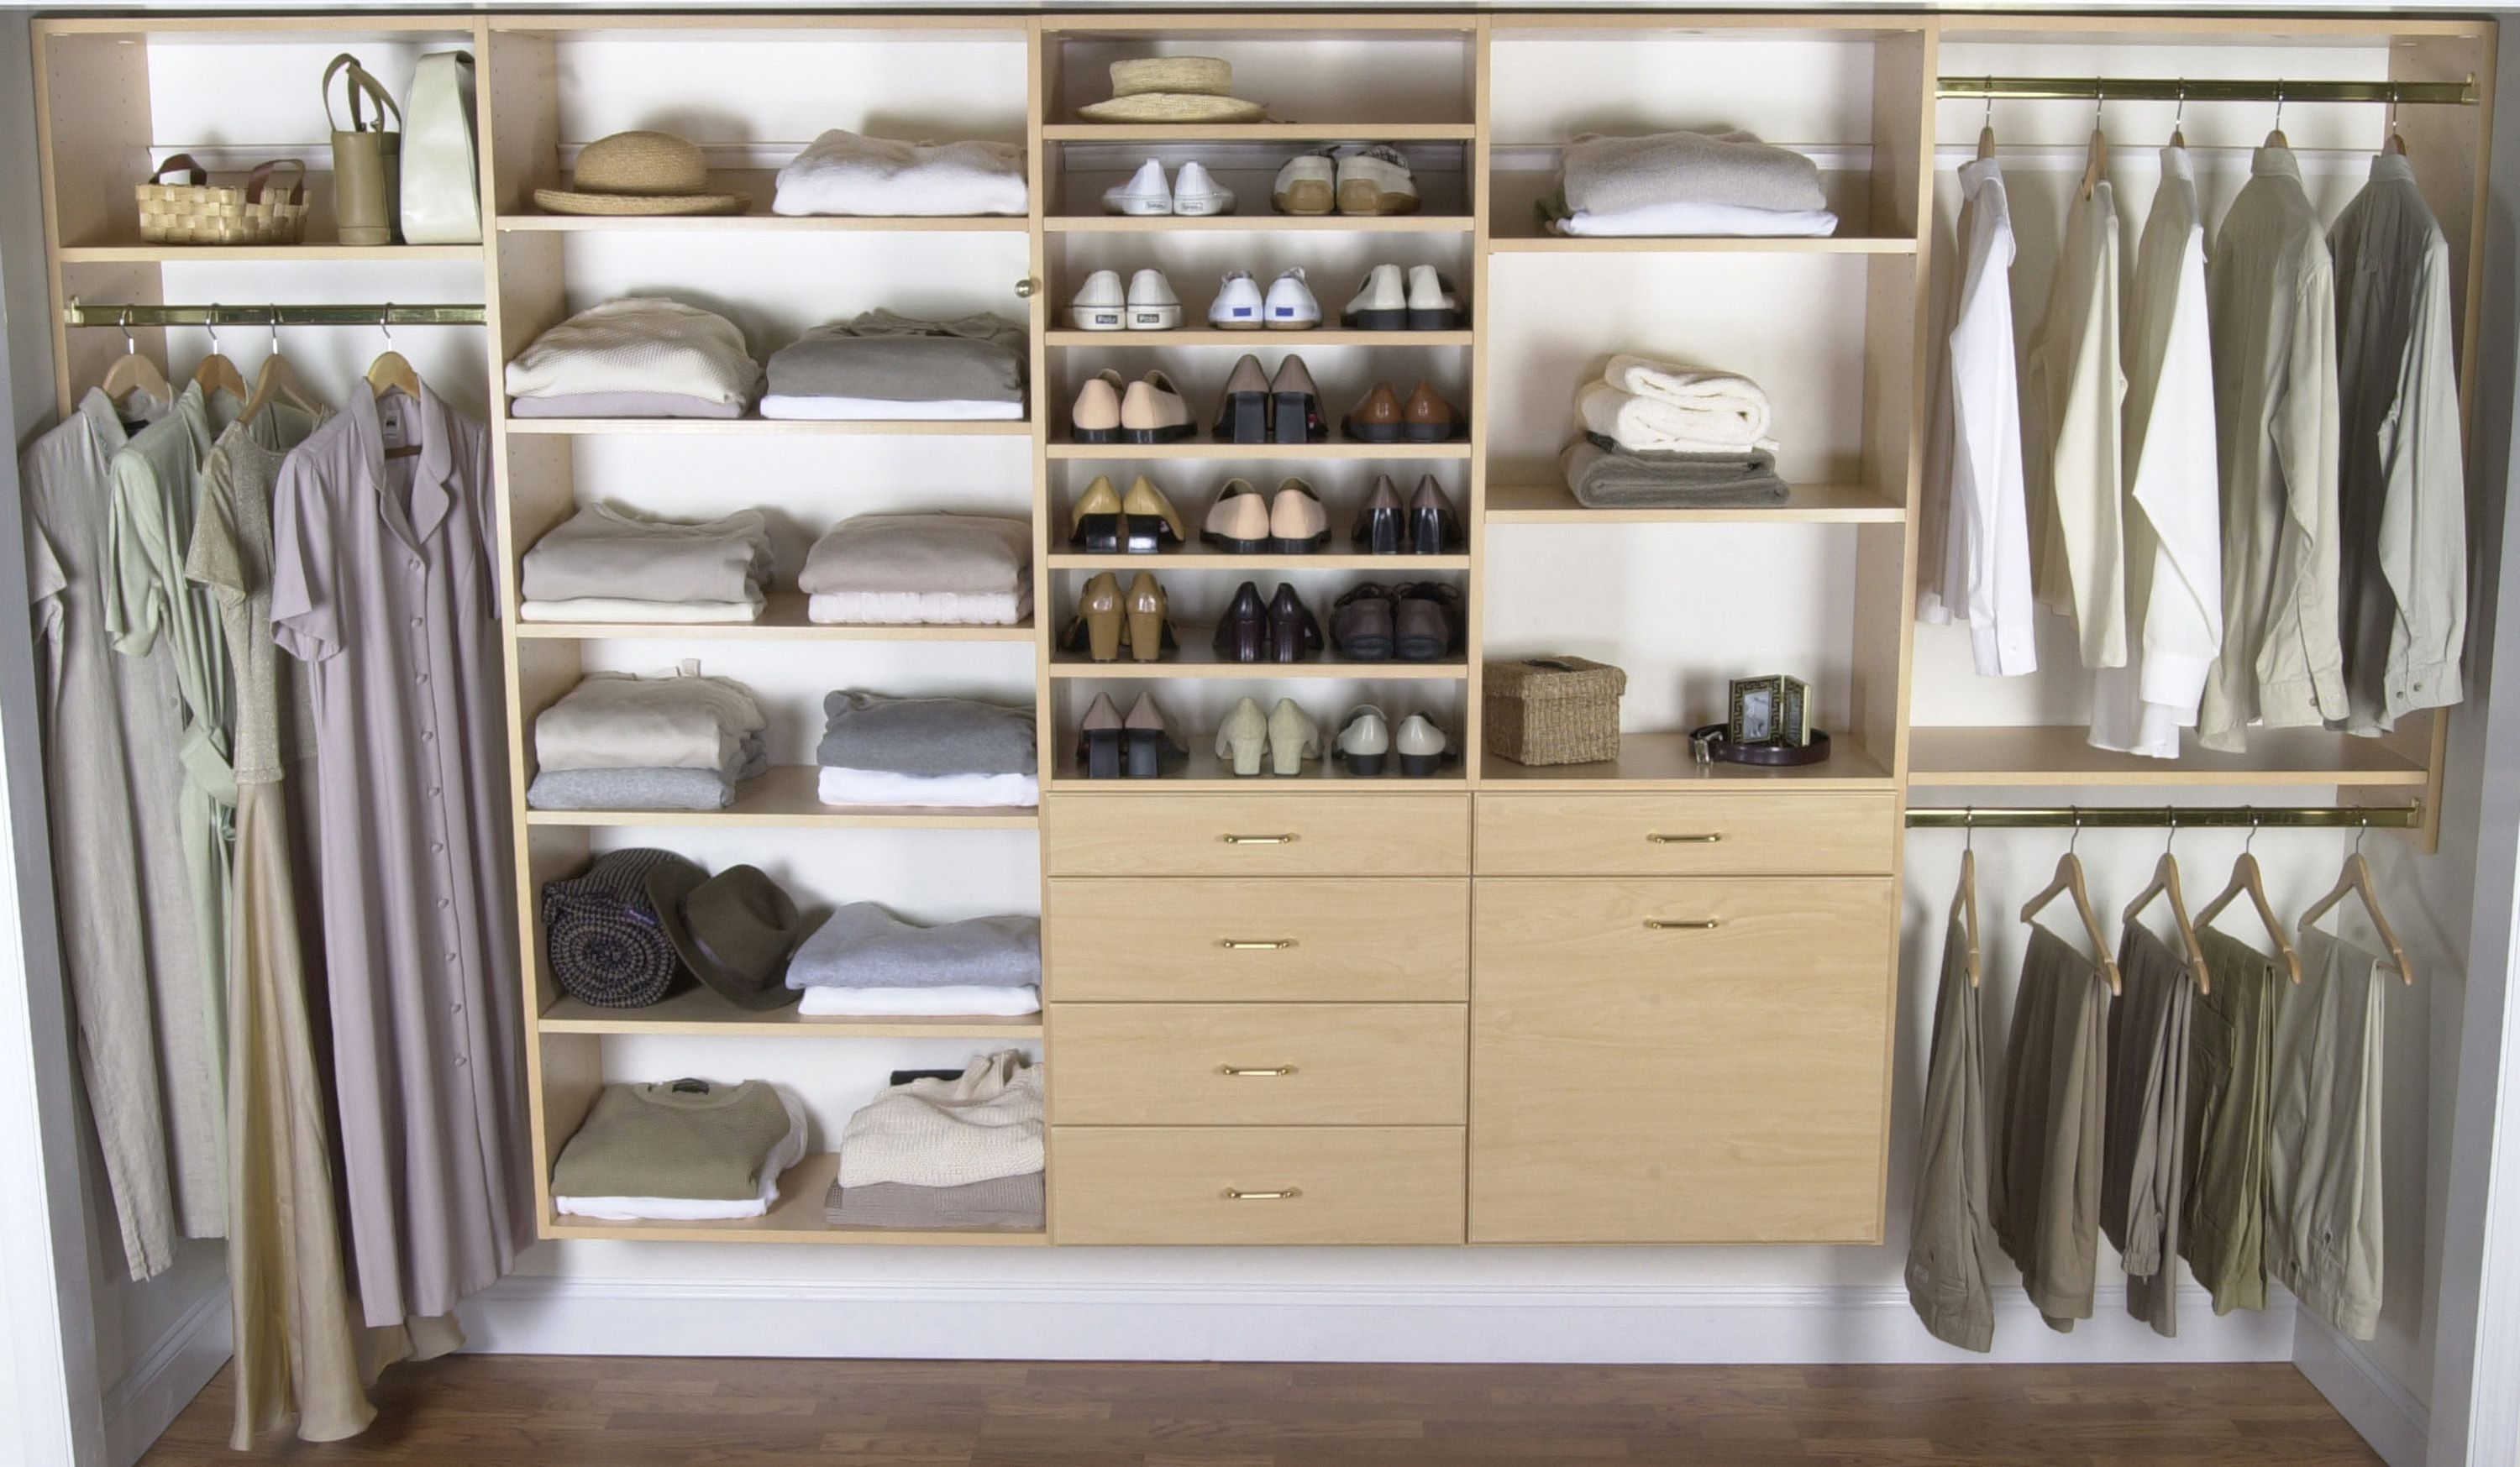 Fill the Walk In Closet with Brilliant Closet Design Ideas using Shoes Shelves and Floating Drawers